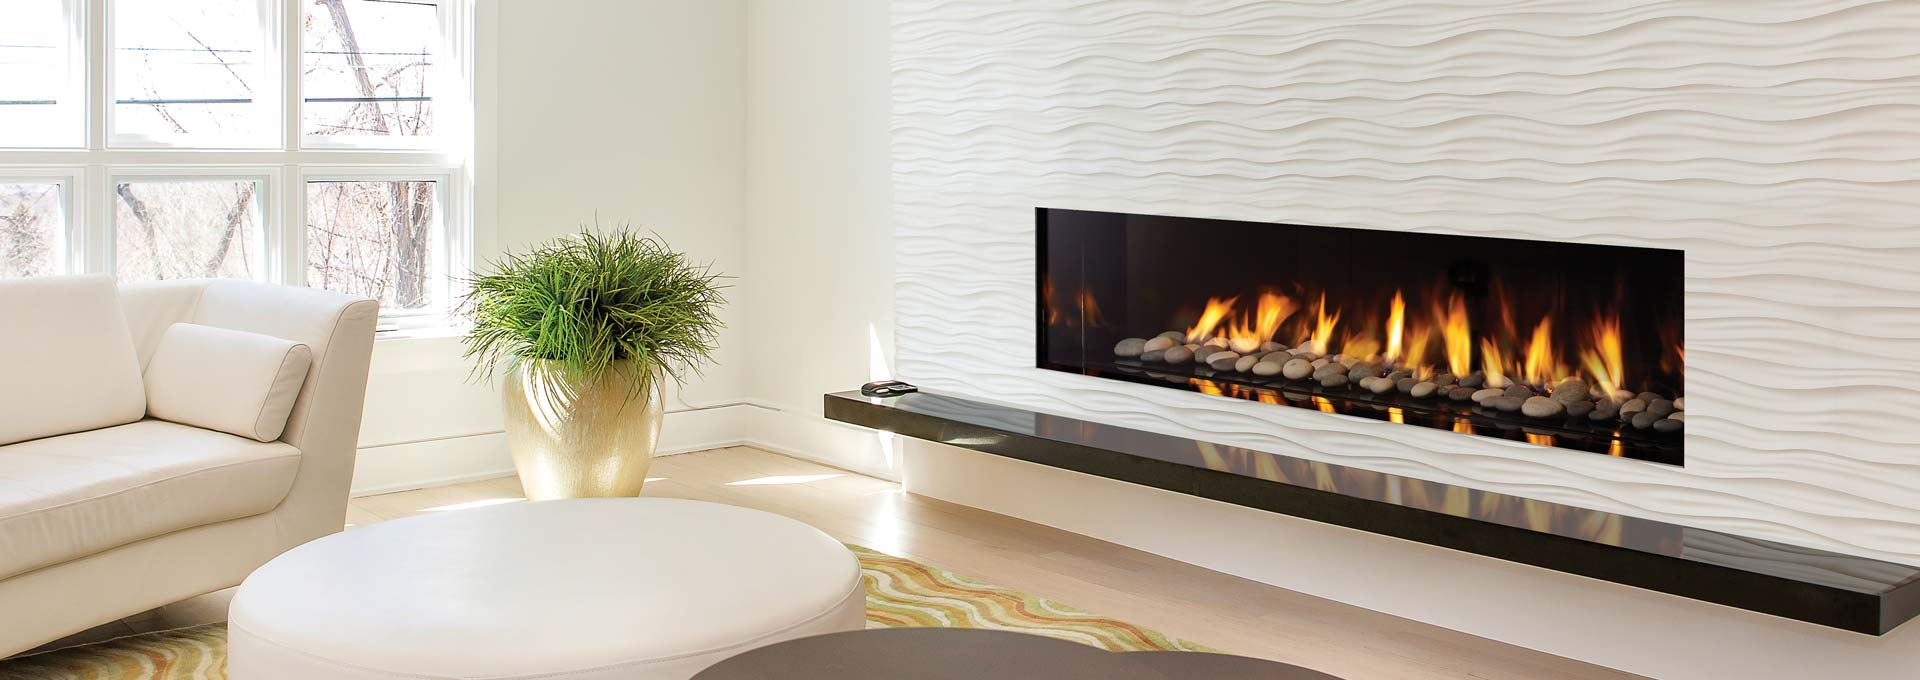 How To Buy A Fireplace: 6 Tips